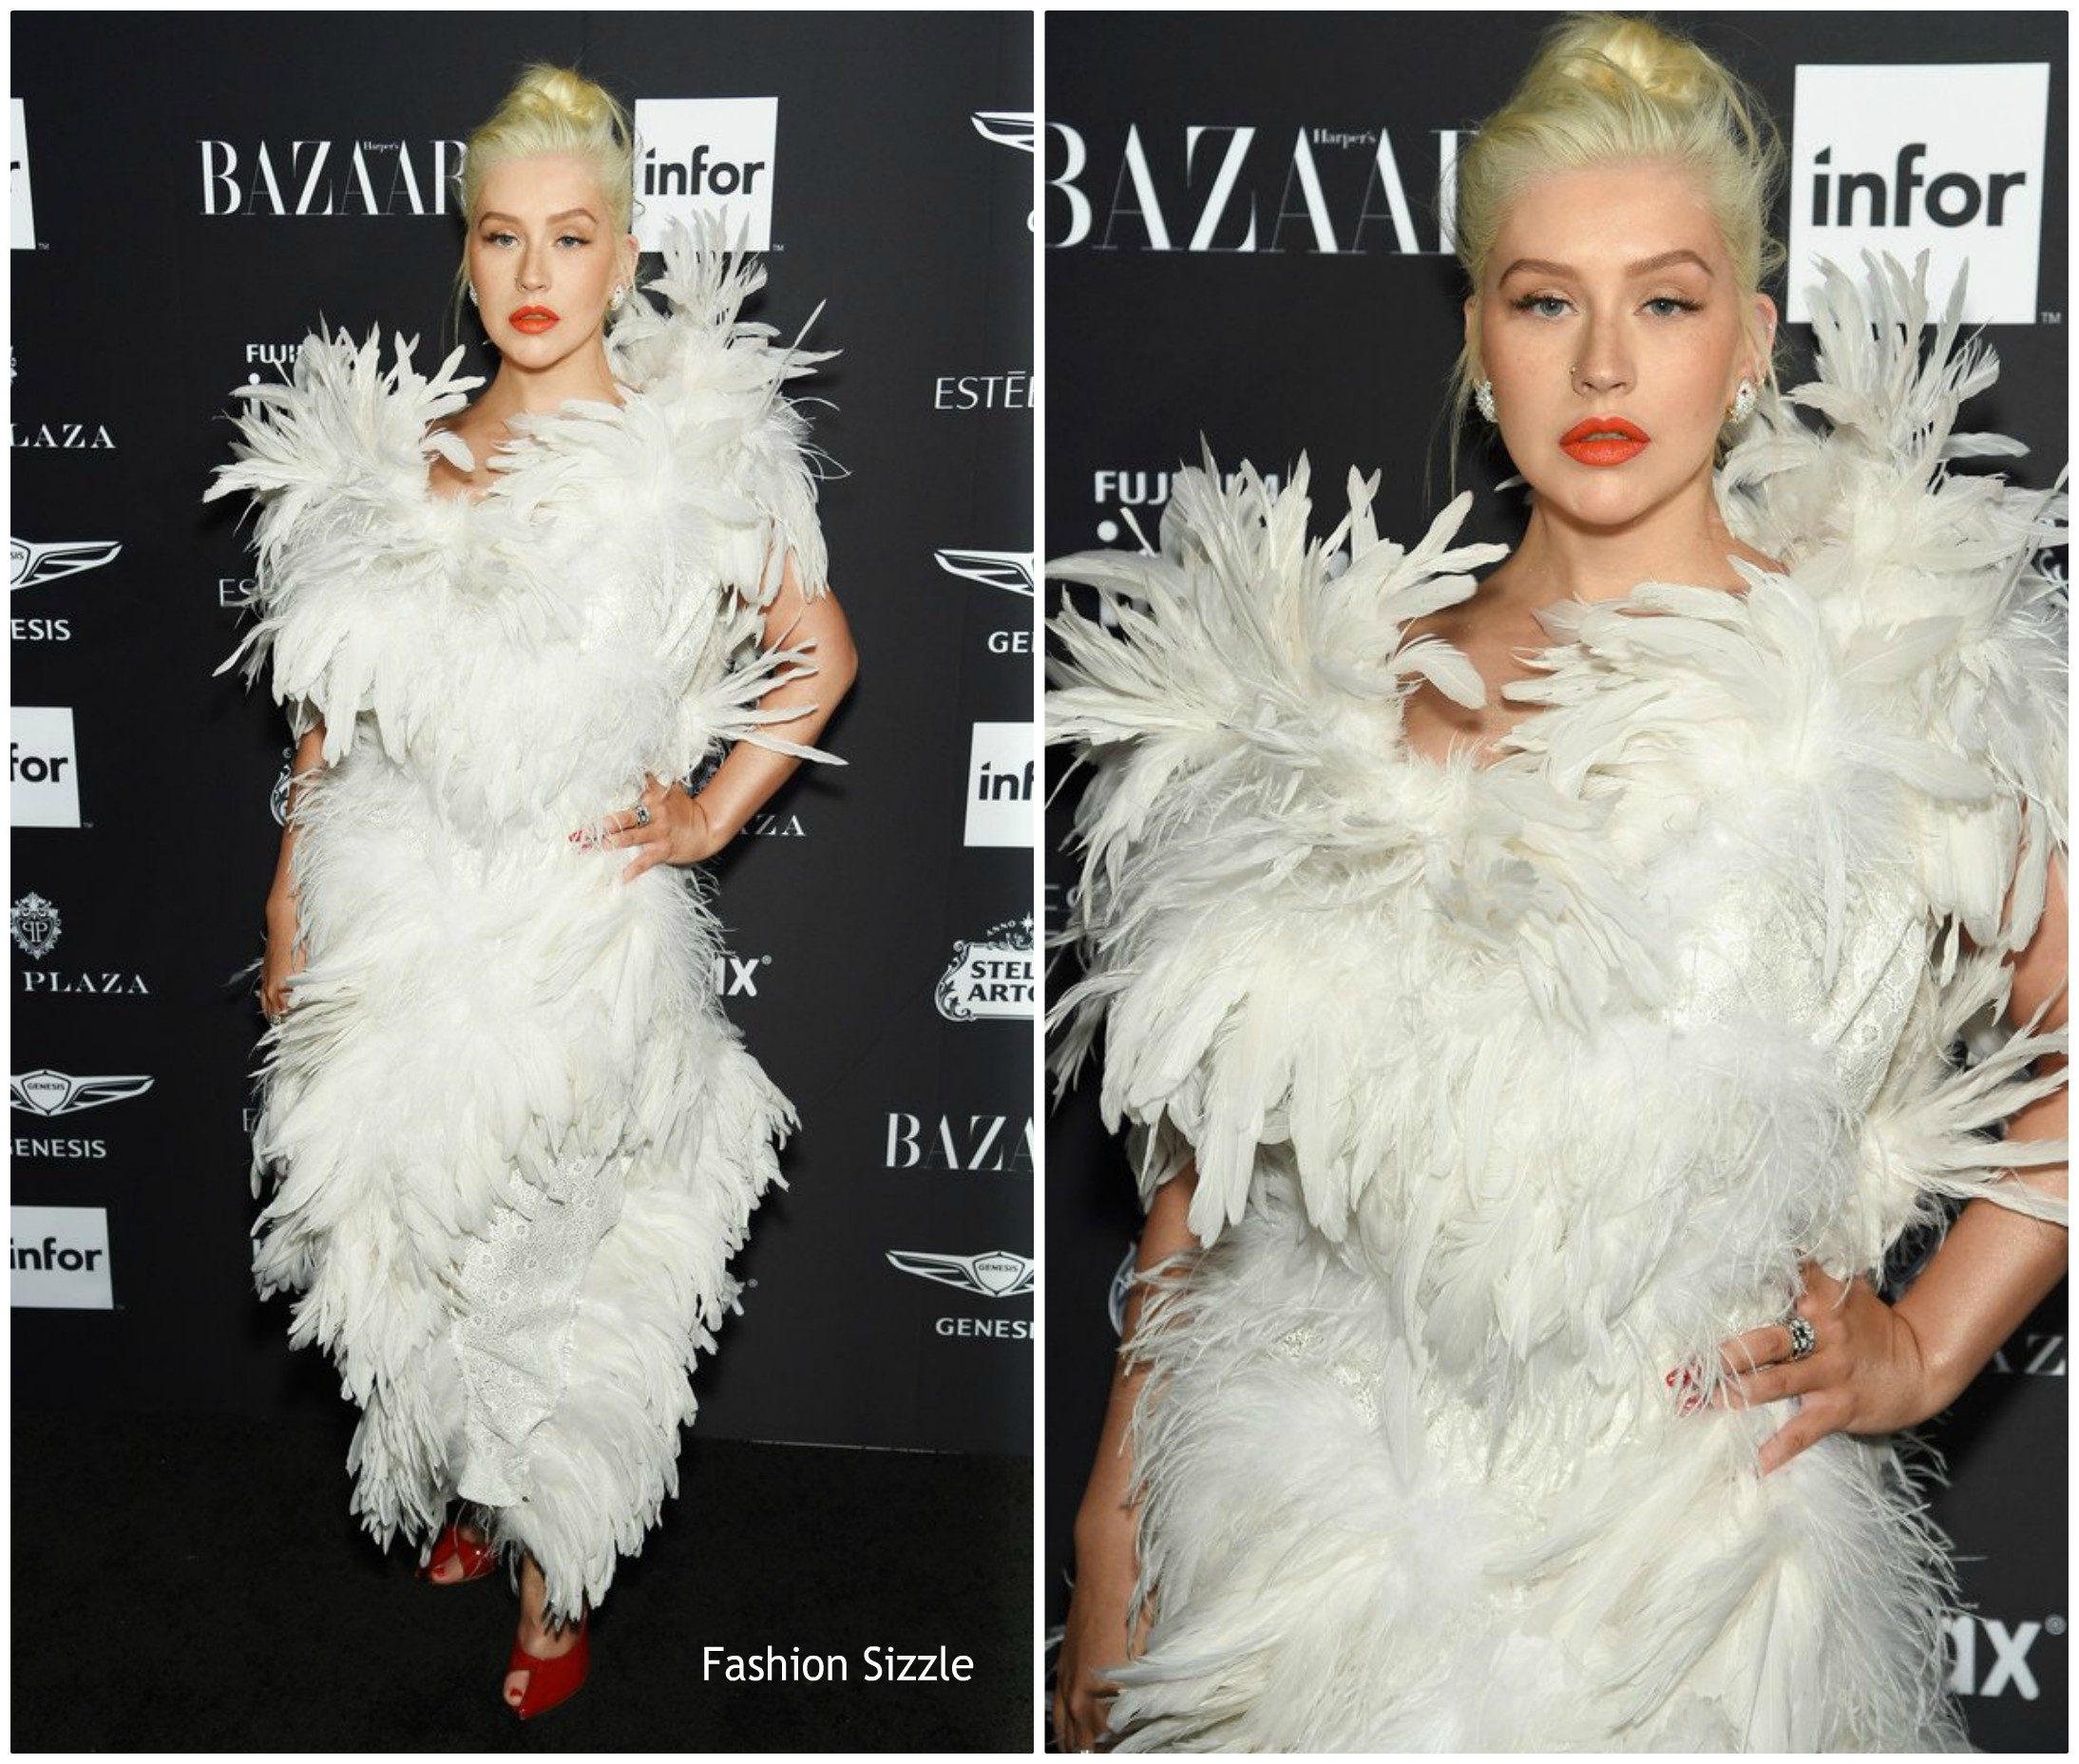 christina-aguilera-in-vivienne-westwood-2018-harpers-bazaar-icons-nyfw-event